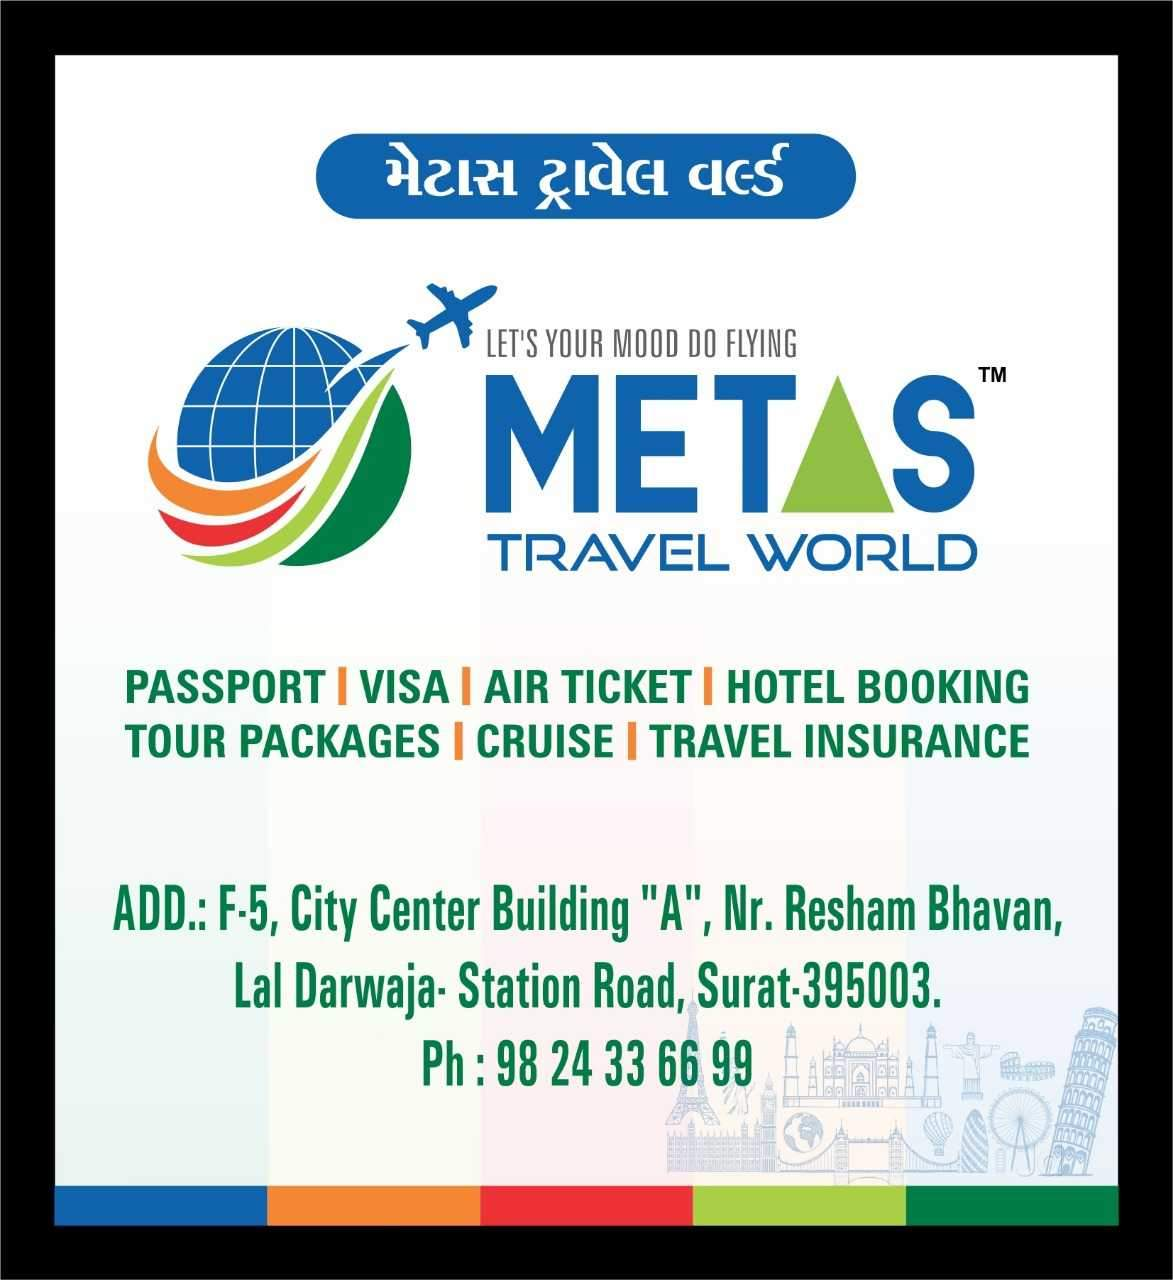 Top 30 Iata Approved Travel Agents in Surat - Justdial